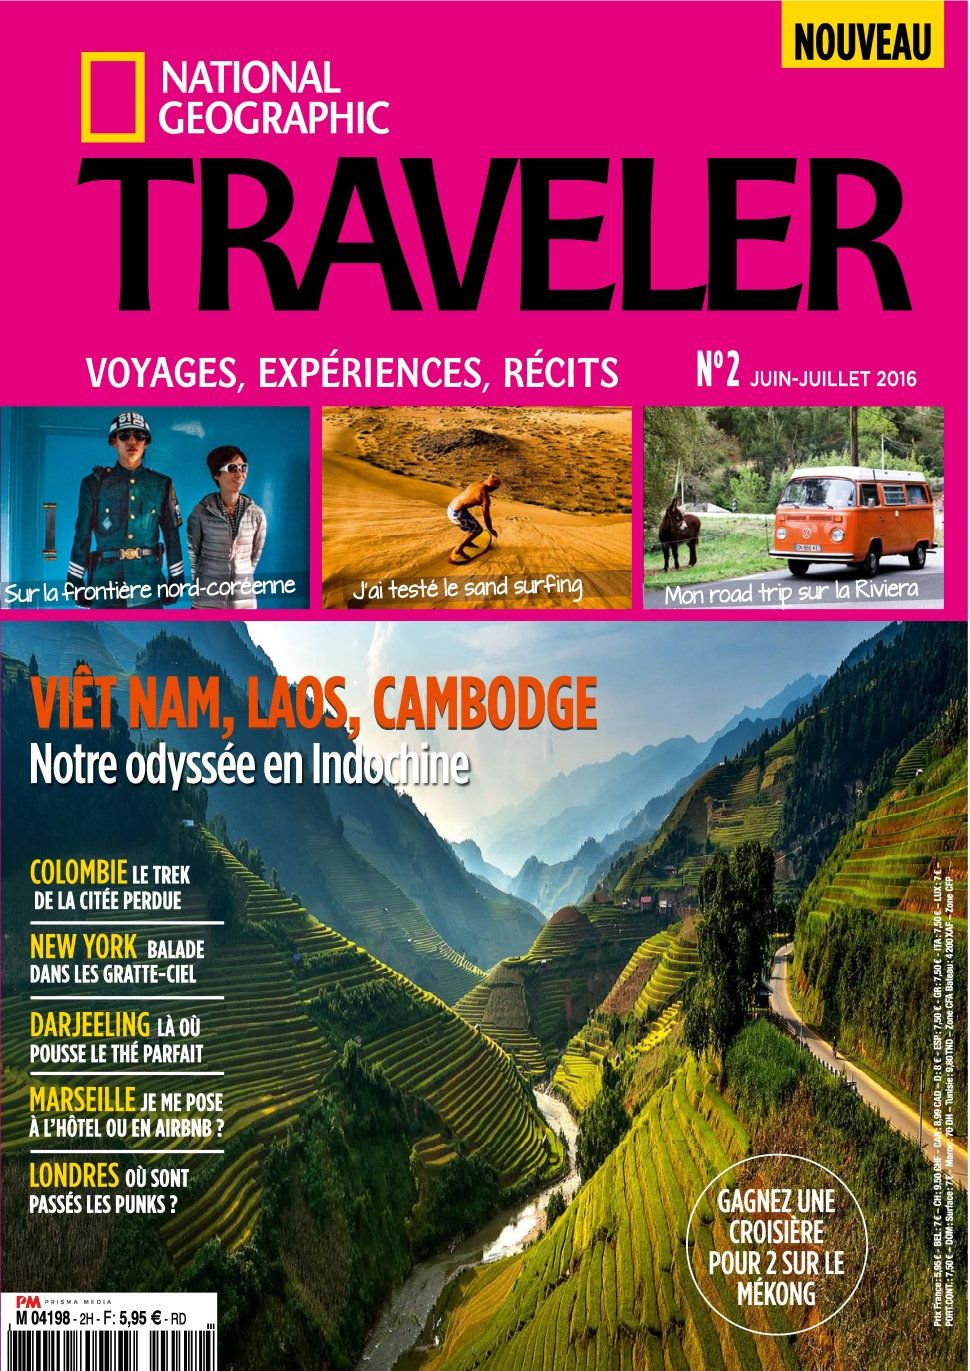 National Geographic Traveler 2 - Juin/Juillet 2016